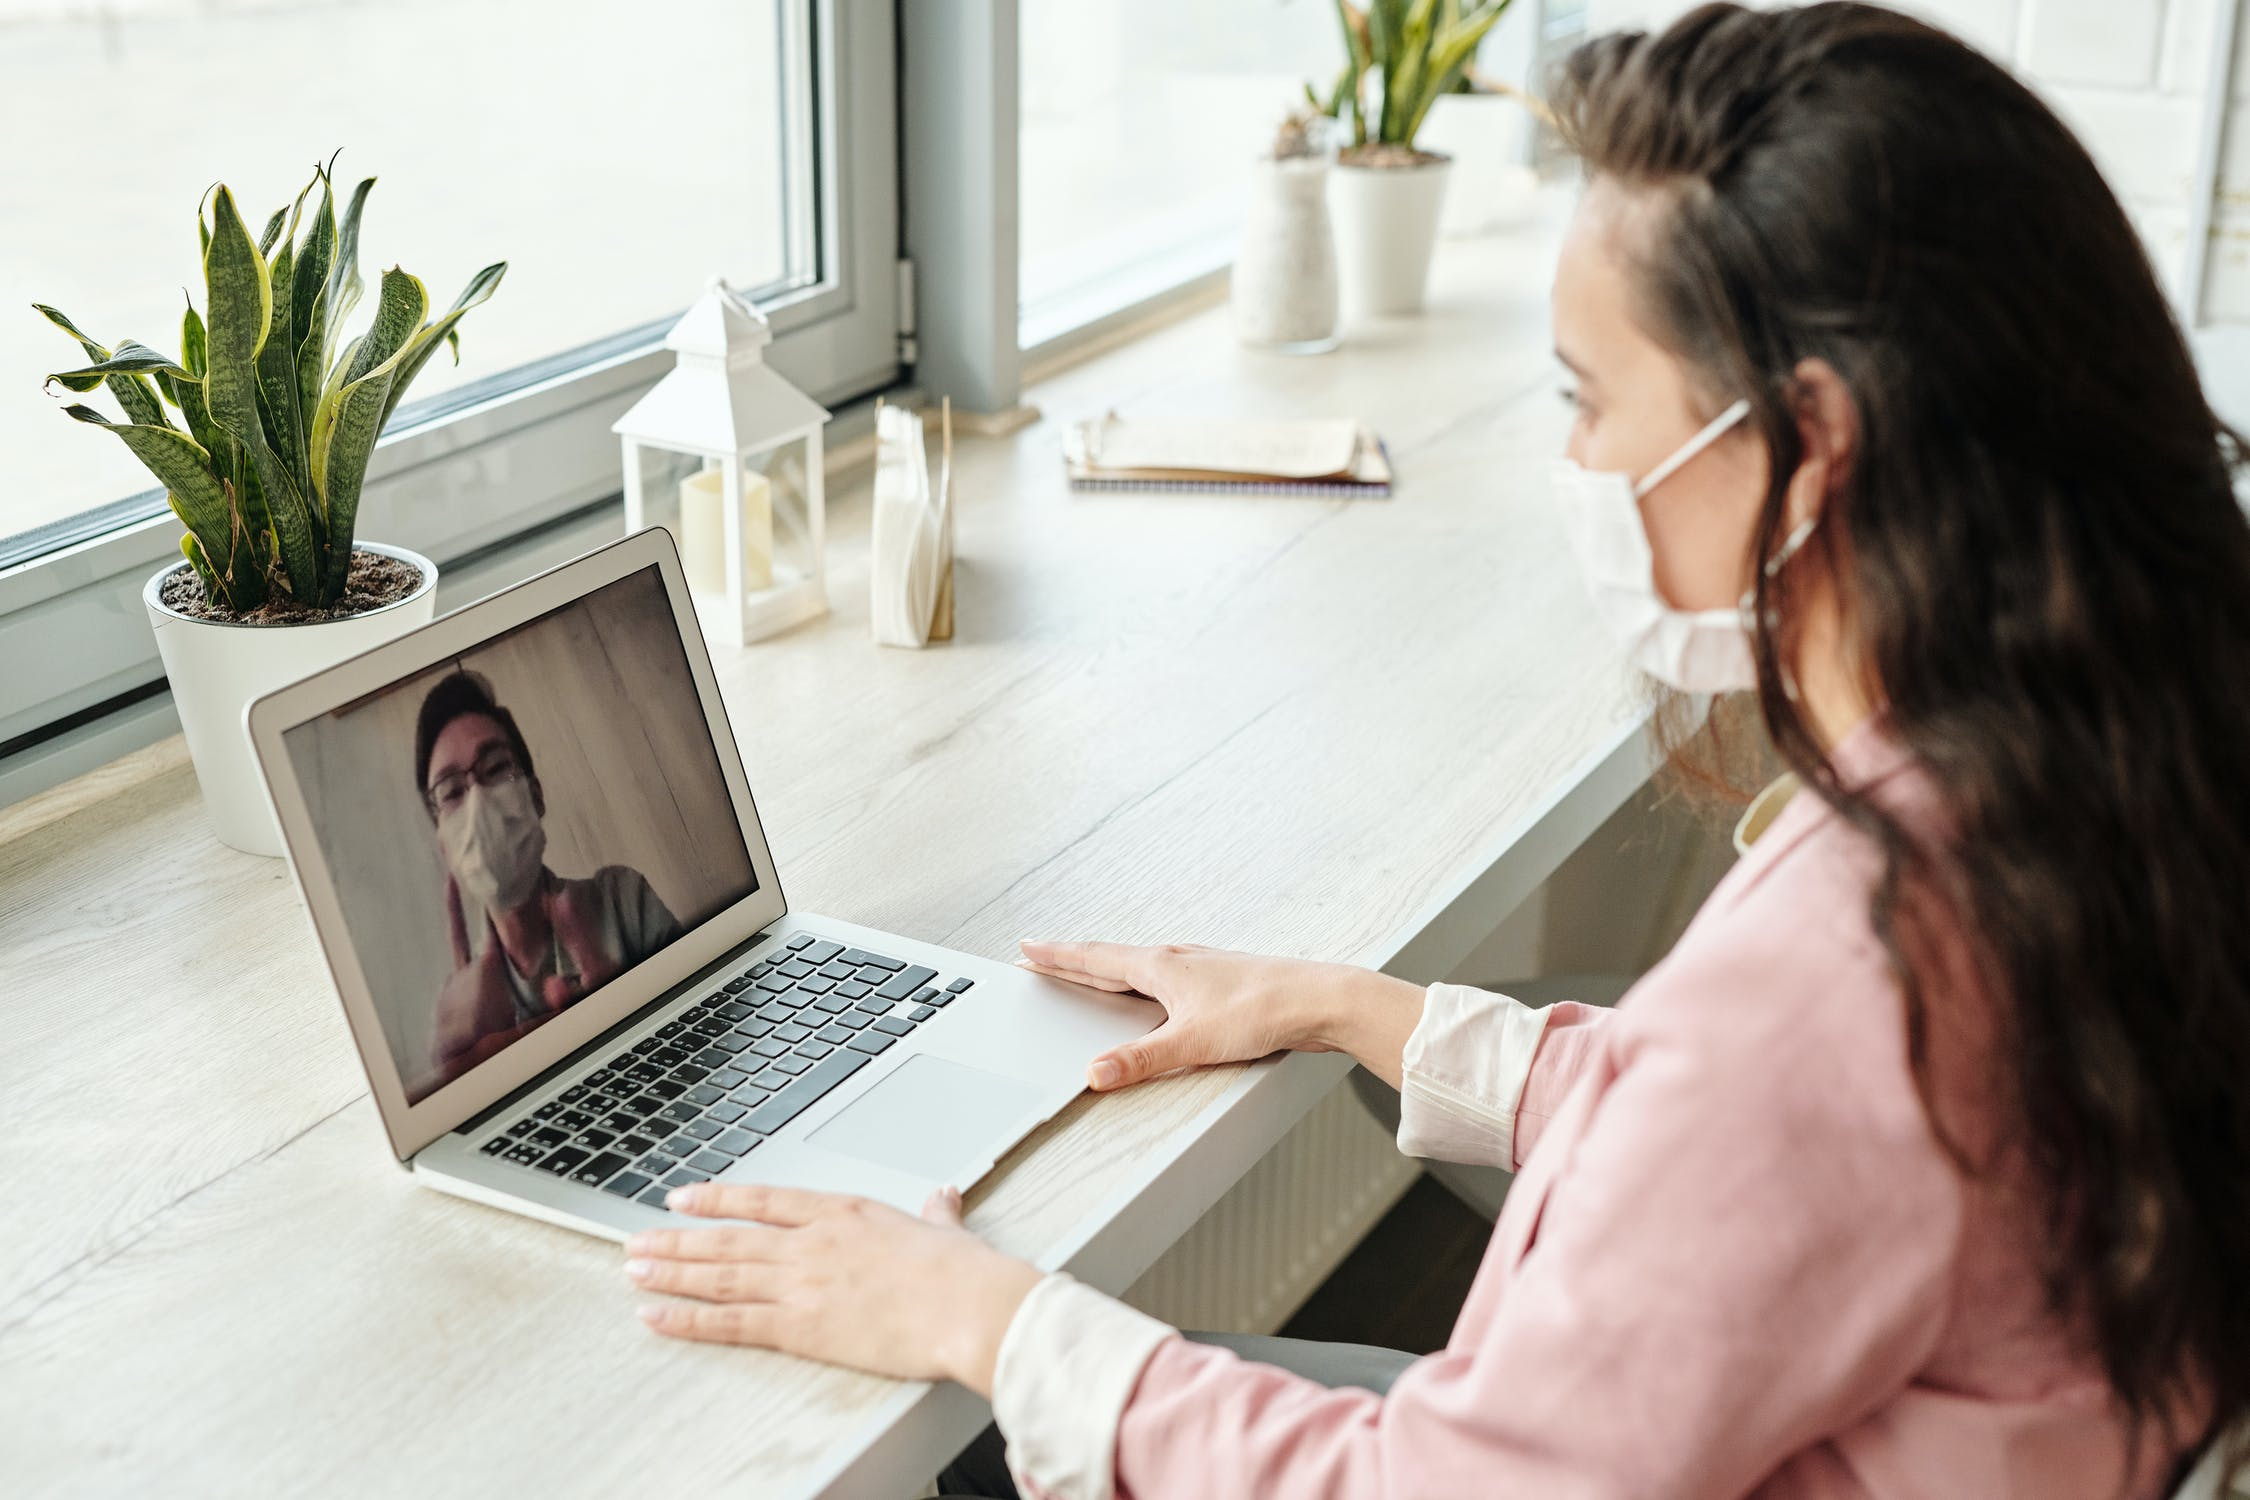 A woman wearing a face mask speaking to a man via a laptop video conference